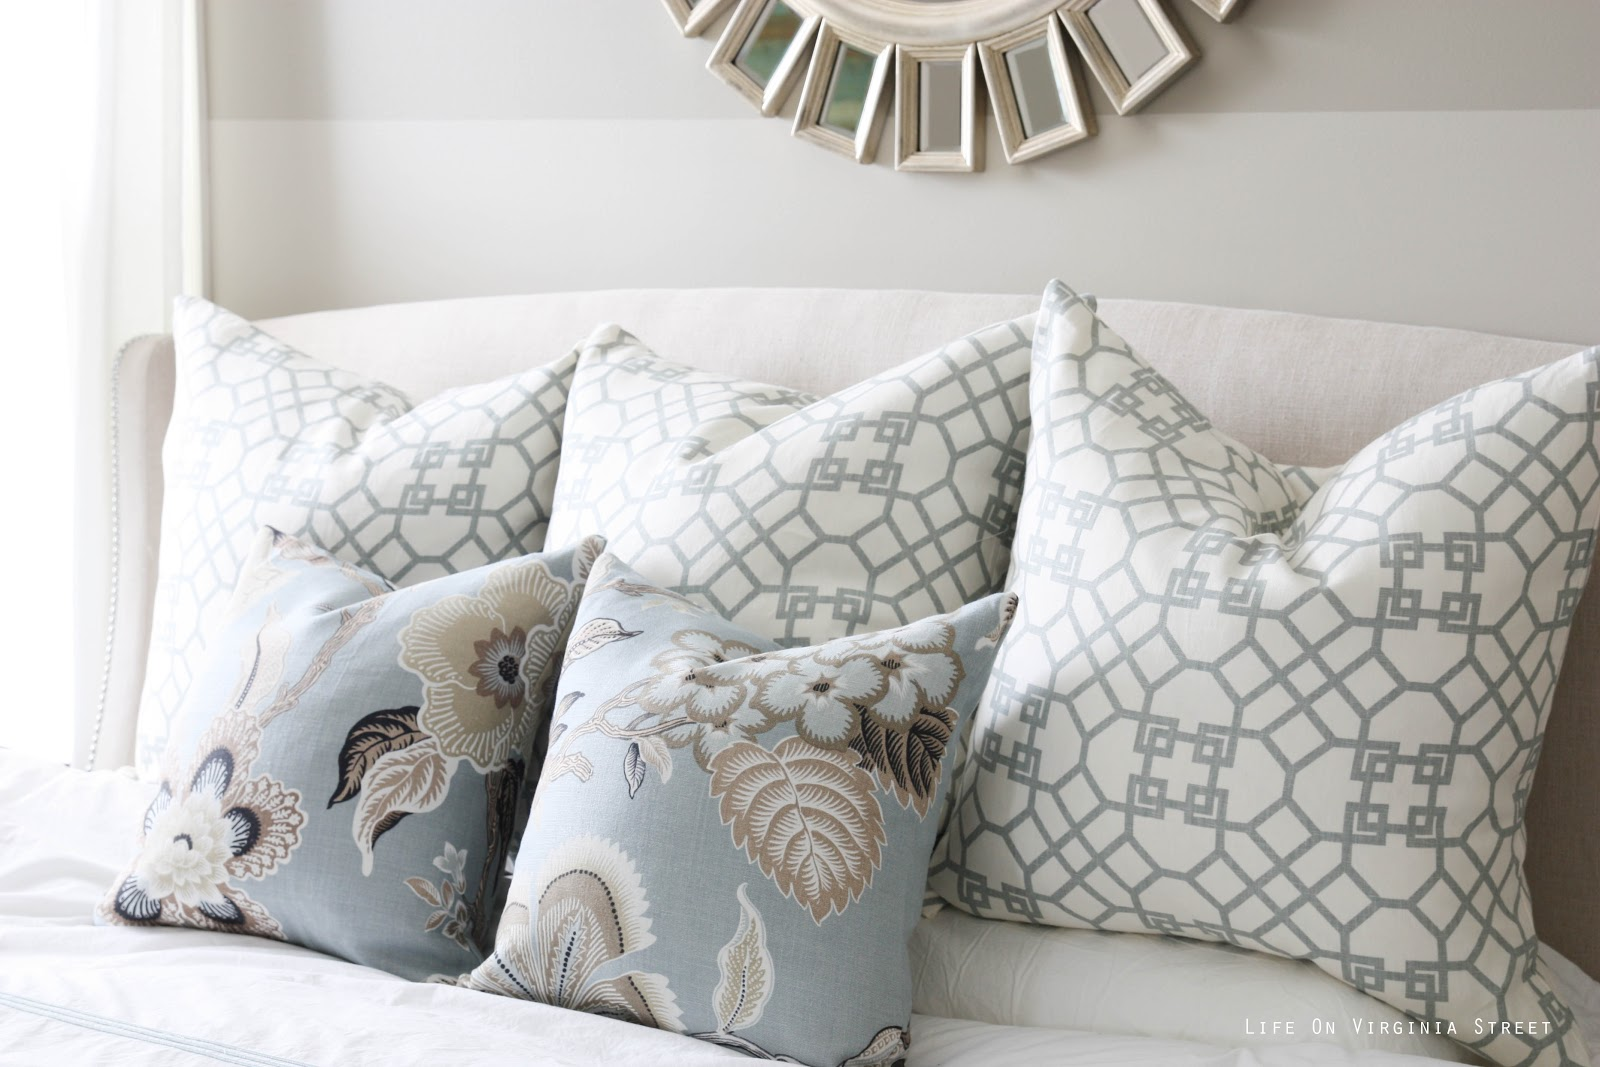 Throw Pillow Fabric Ideas : Tried and True...Celerie Kemble s Hot House Flowers Fabric - Sita Montgomery Interiors